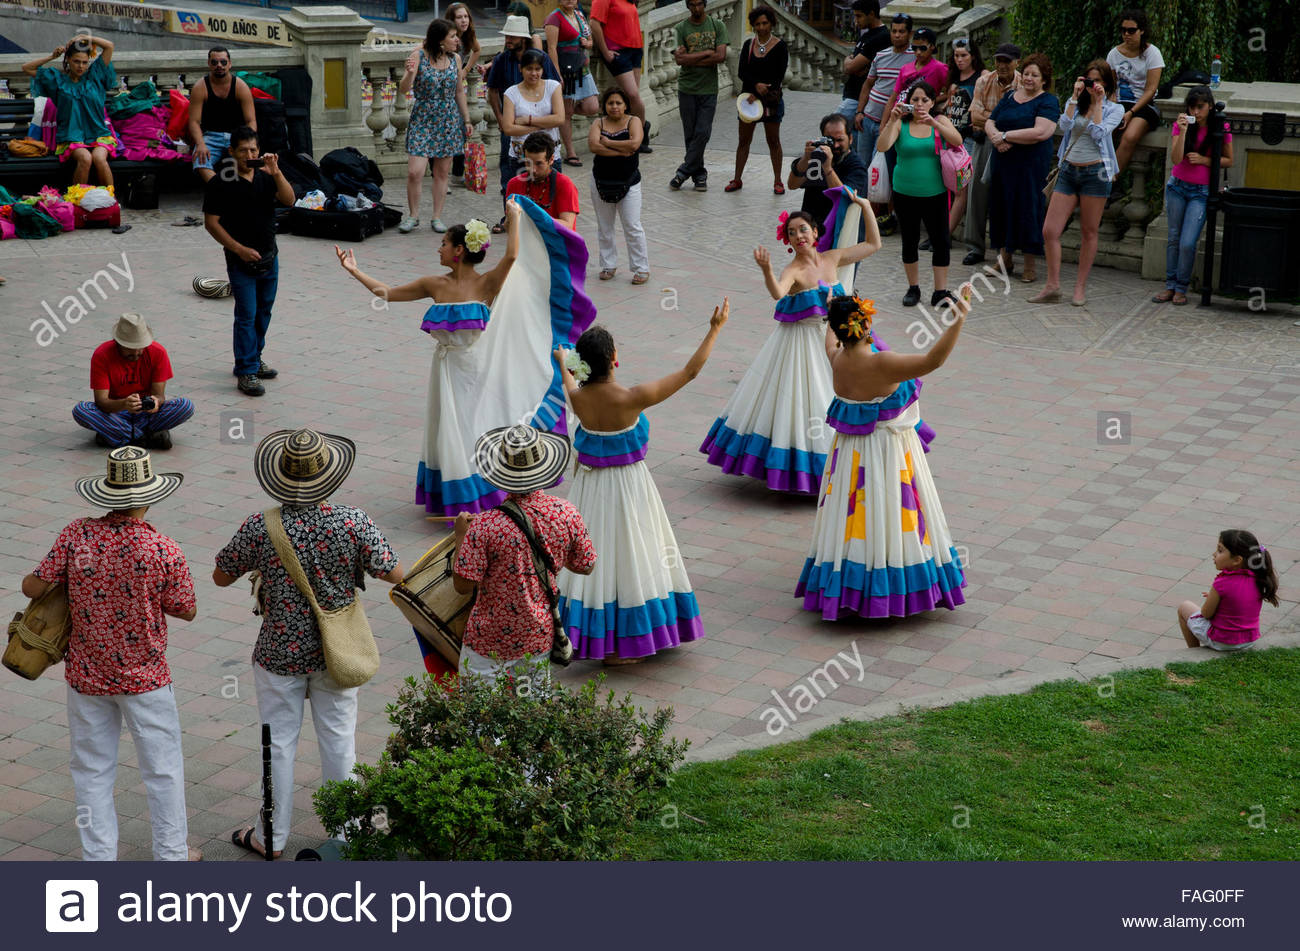 Dating chileans dancing